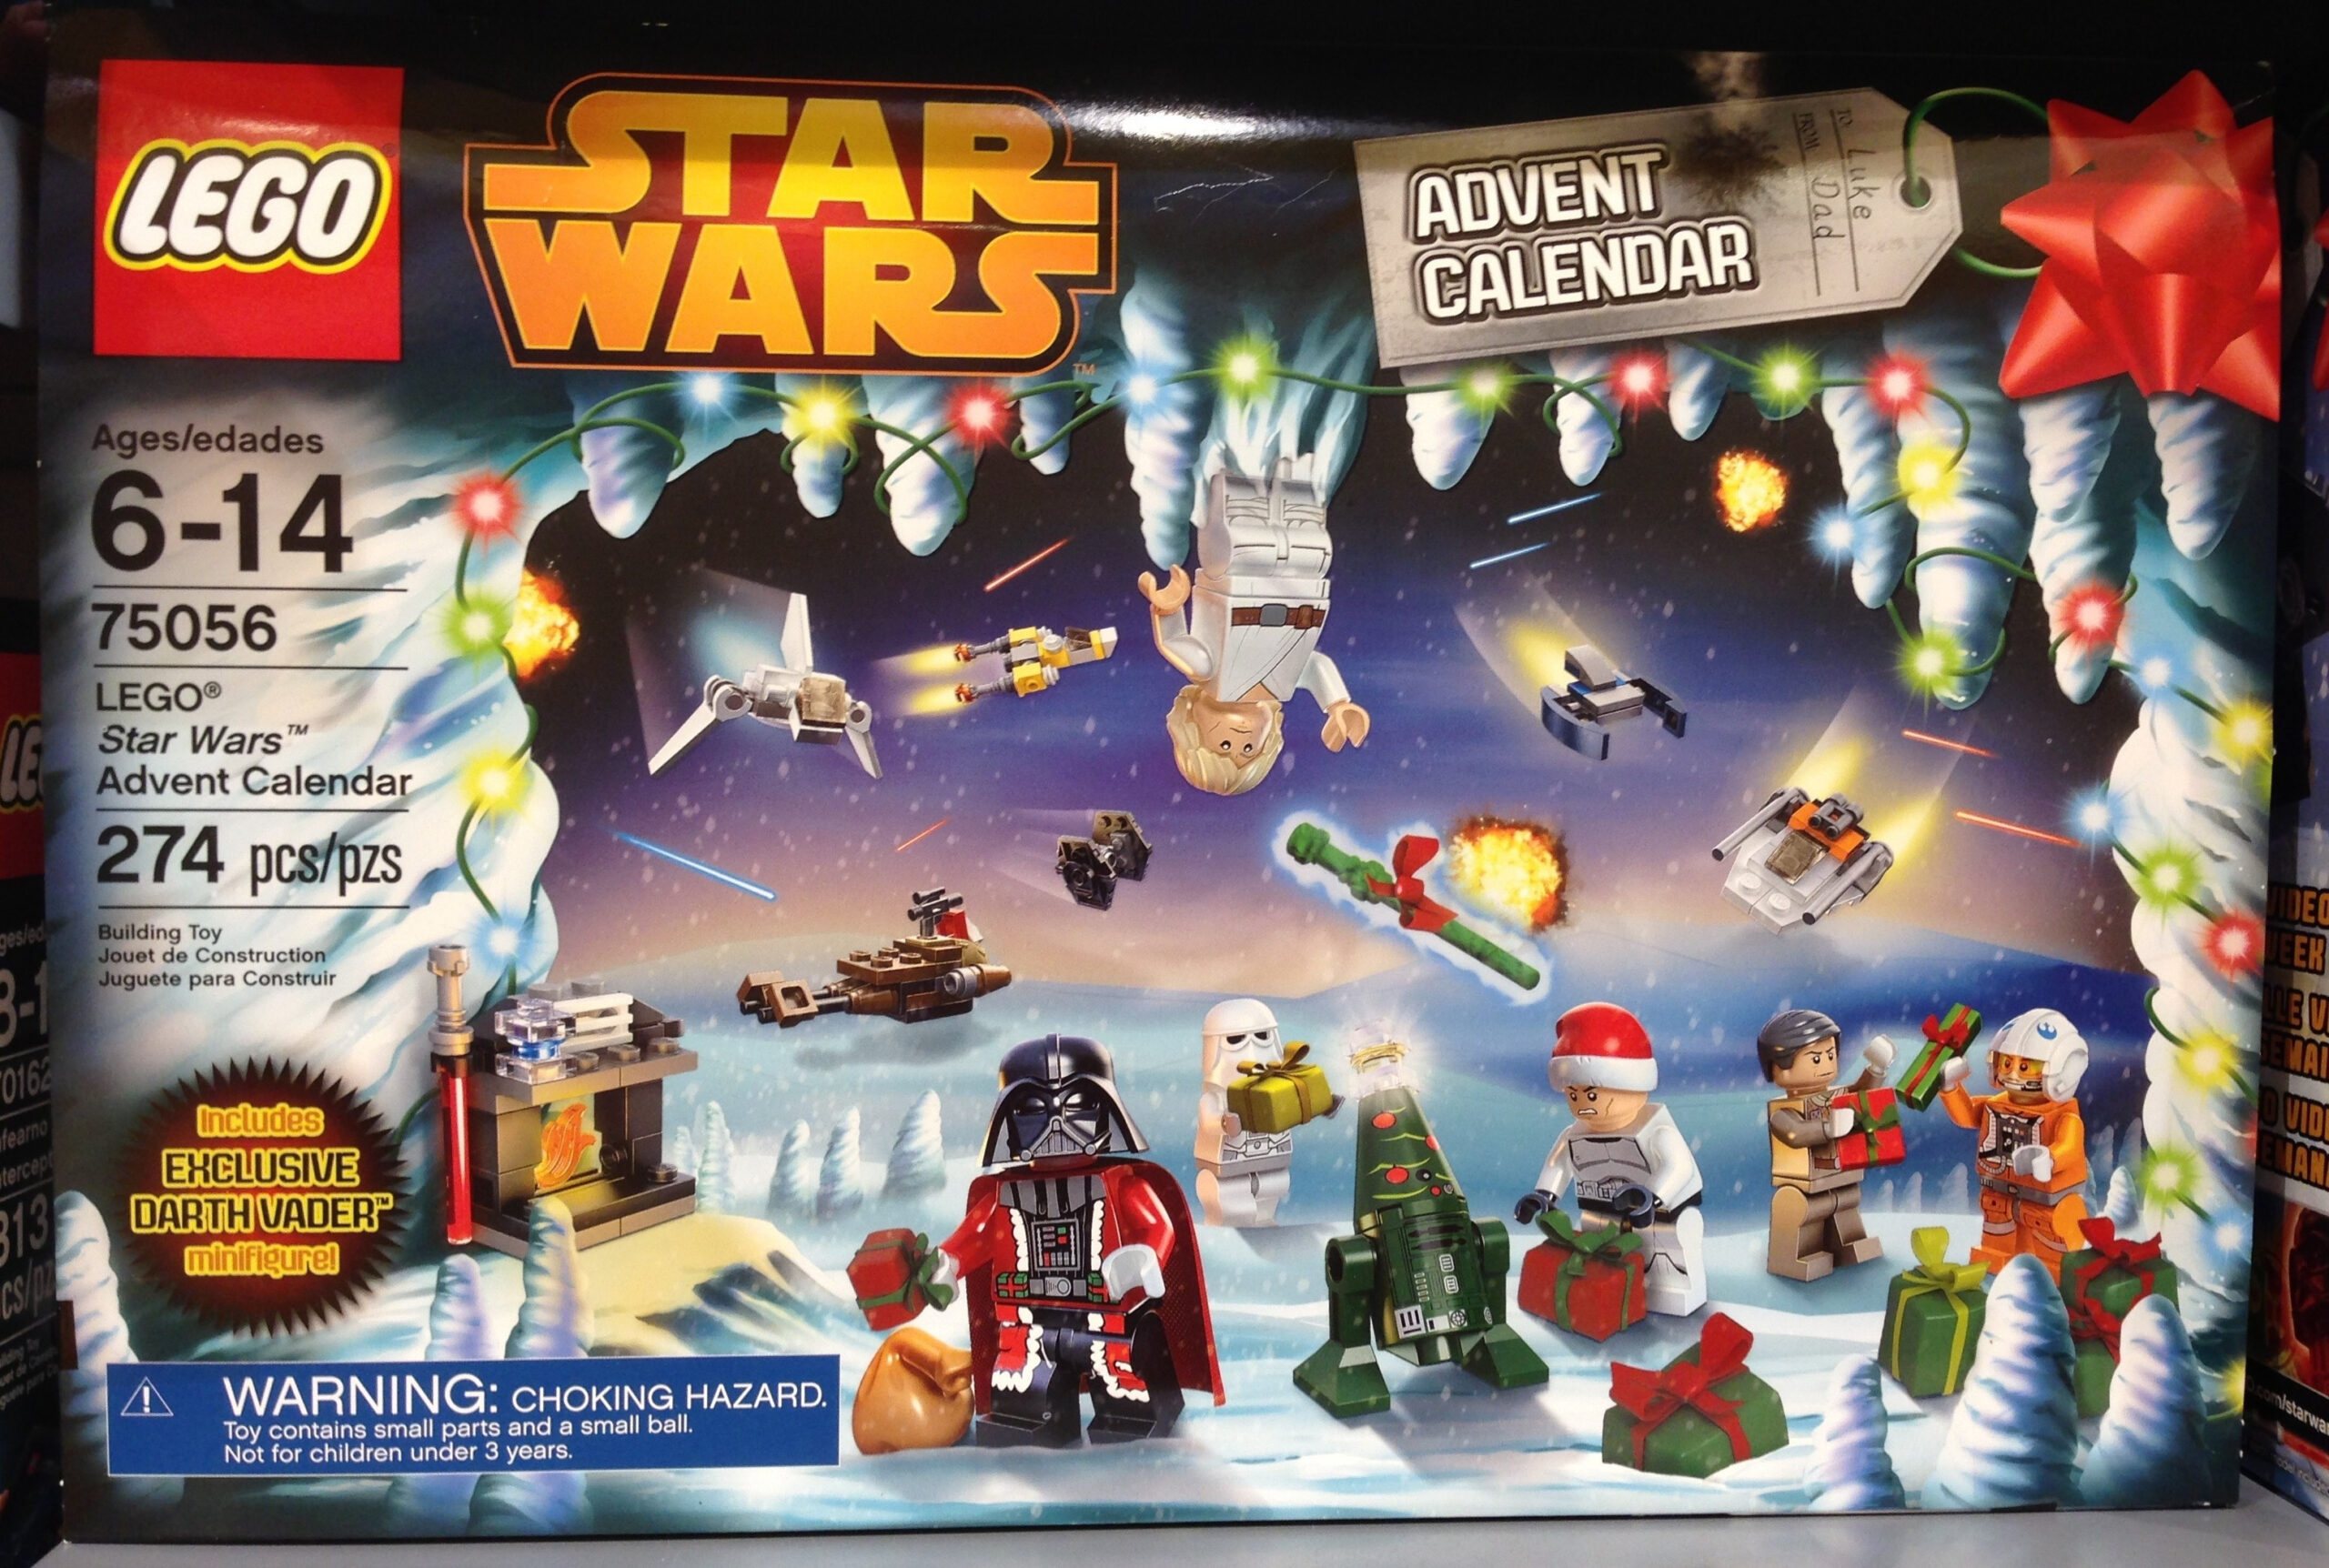 Lego Star Wars 2014 Advent Calendar Released In Stores